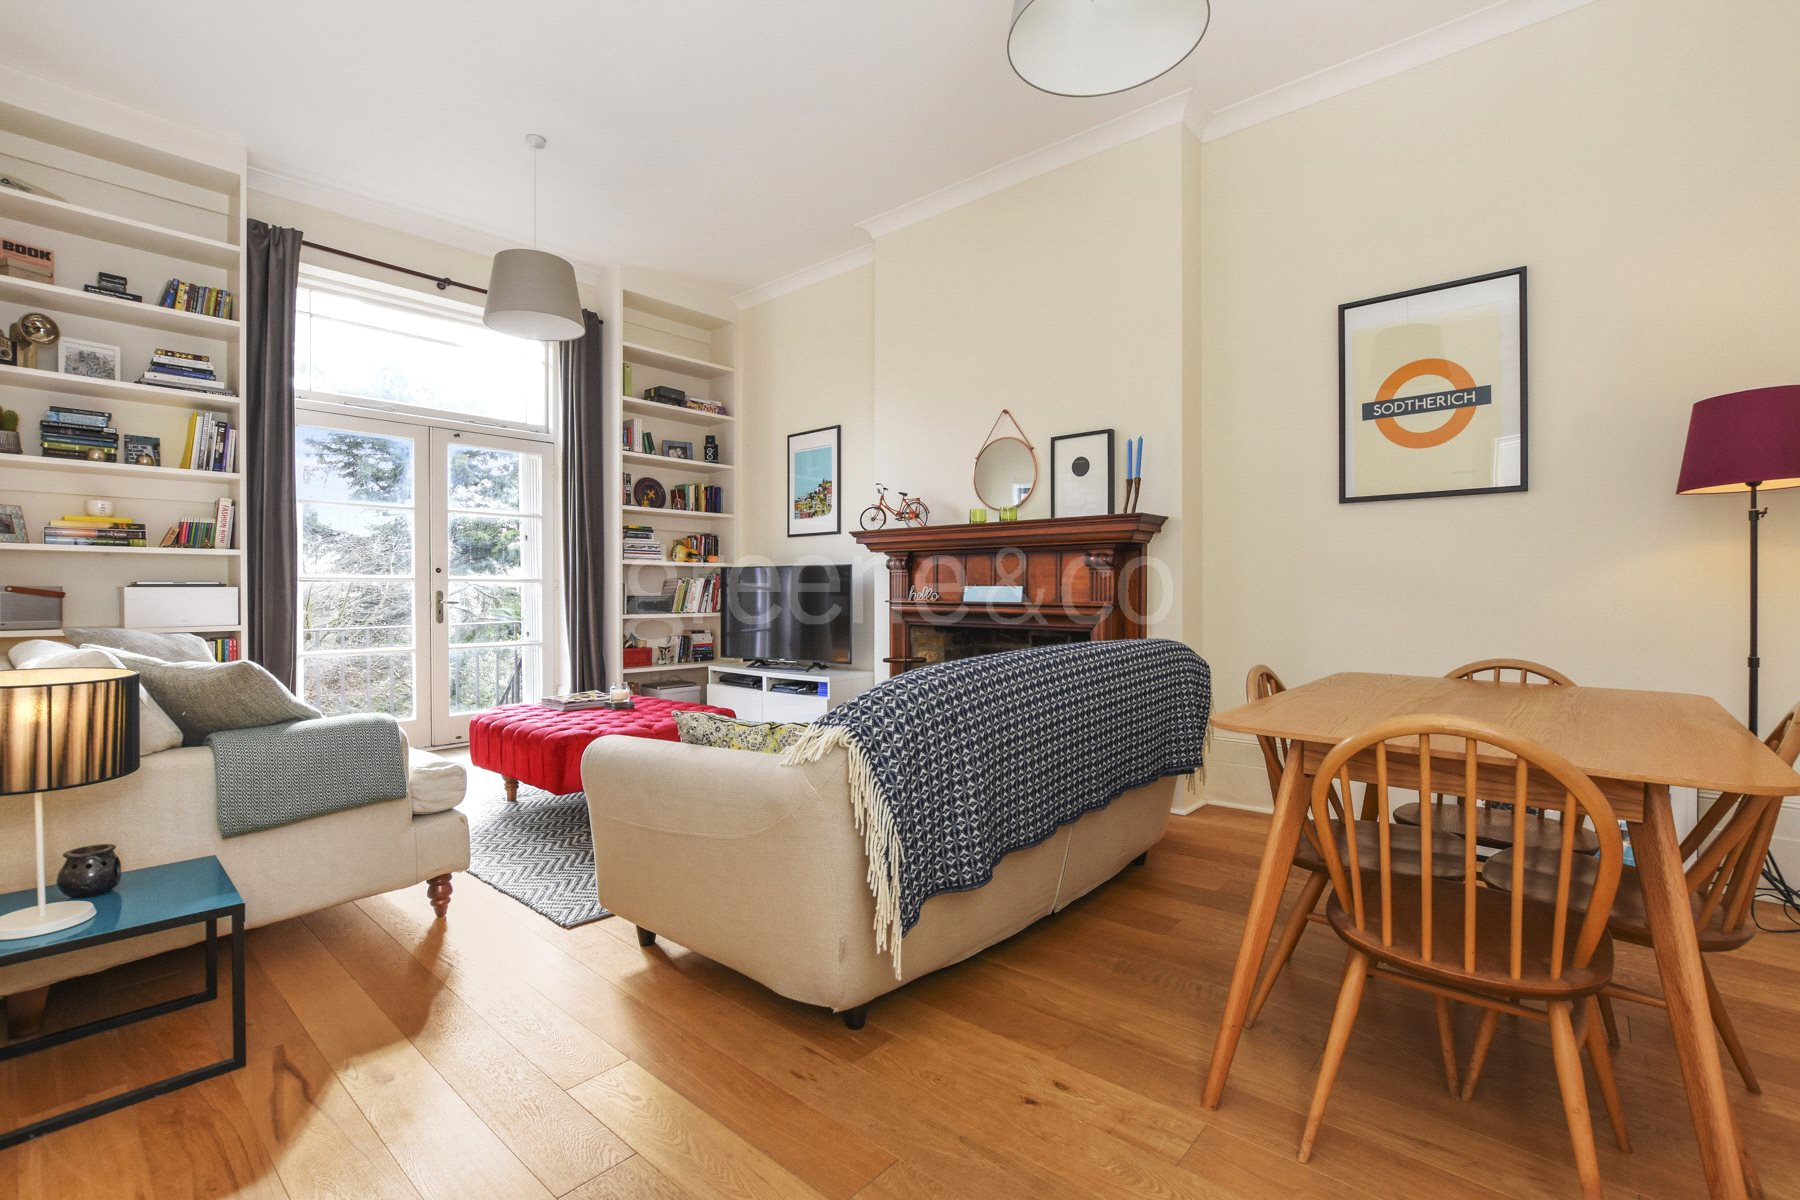 1 Bedroom House for sale in Mount View Road, Crouch End Borders, London, N4